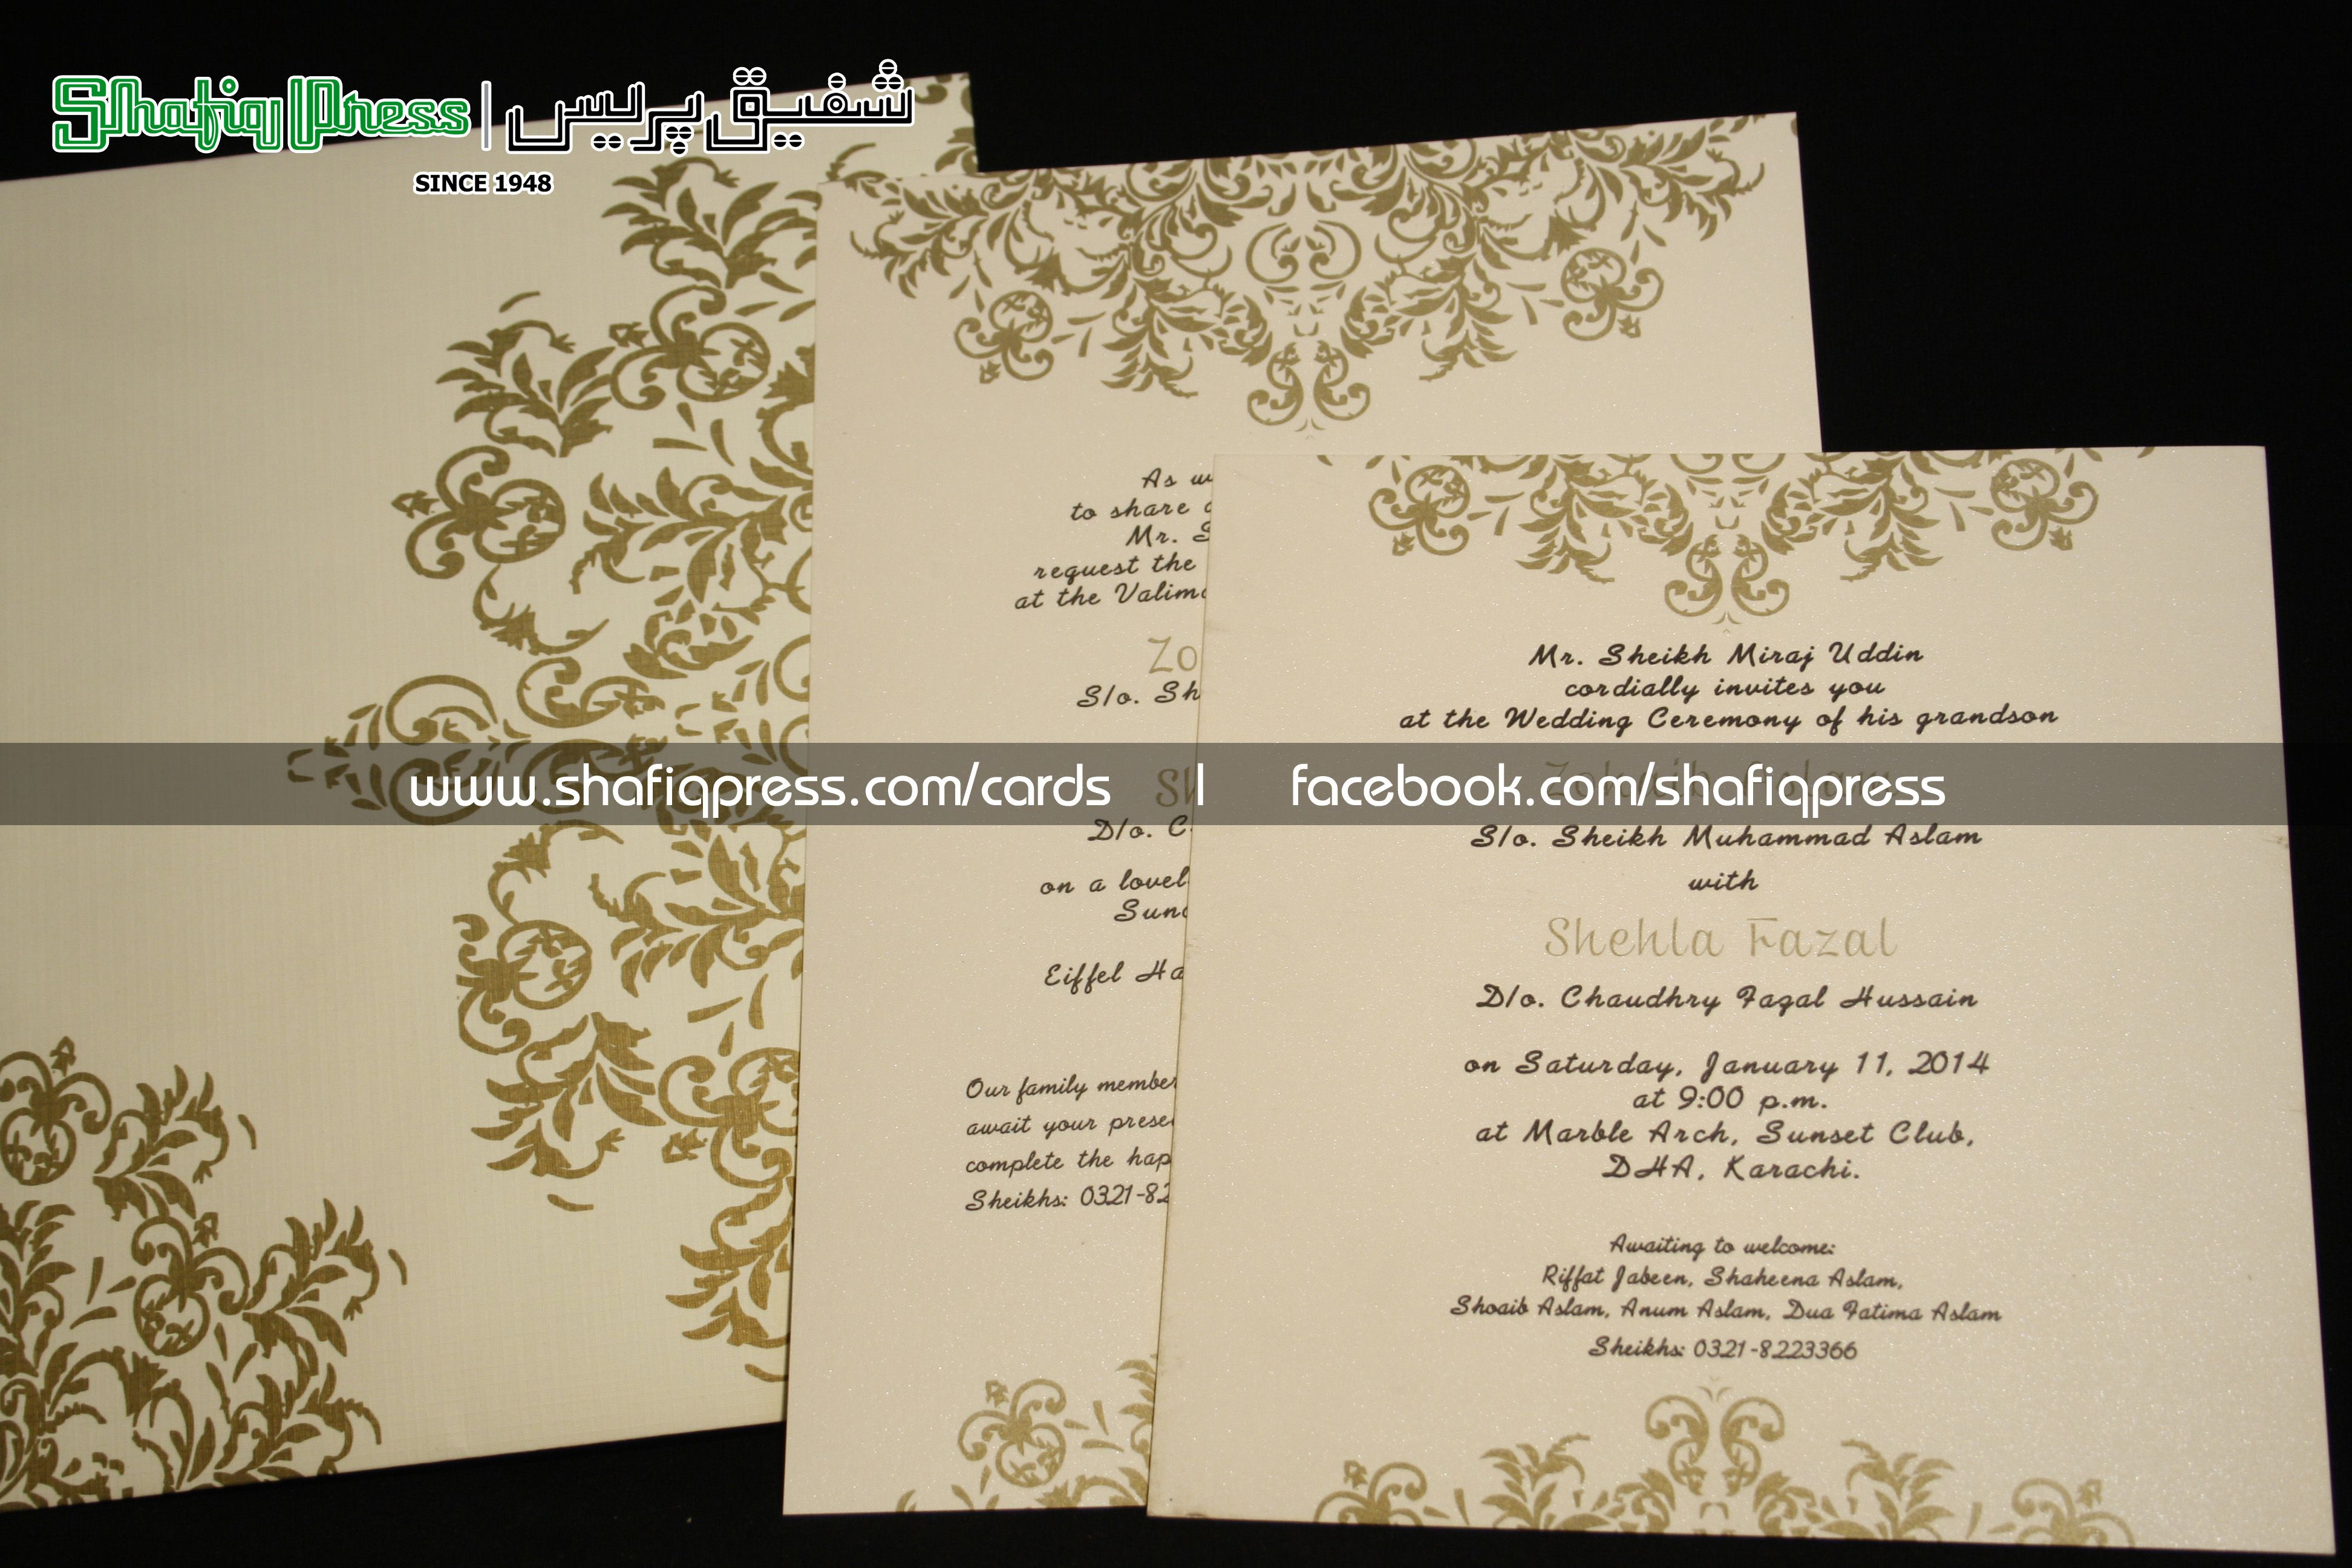 Www Shafiqpress Com Shafiq Press Wedding Cards In Karachi Pakistan Shafiq Press Shadi Cards Wedding Wedding Invitation Card Design Wedding Cards Marriage Cards